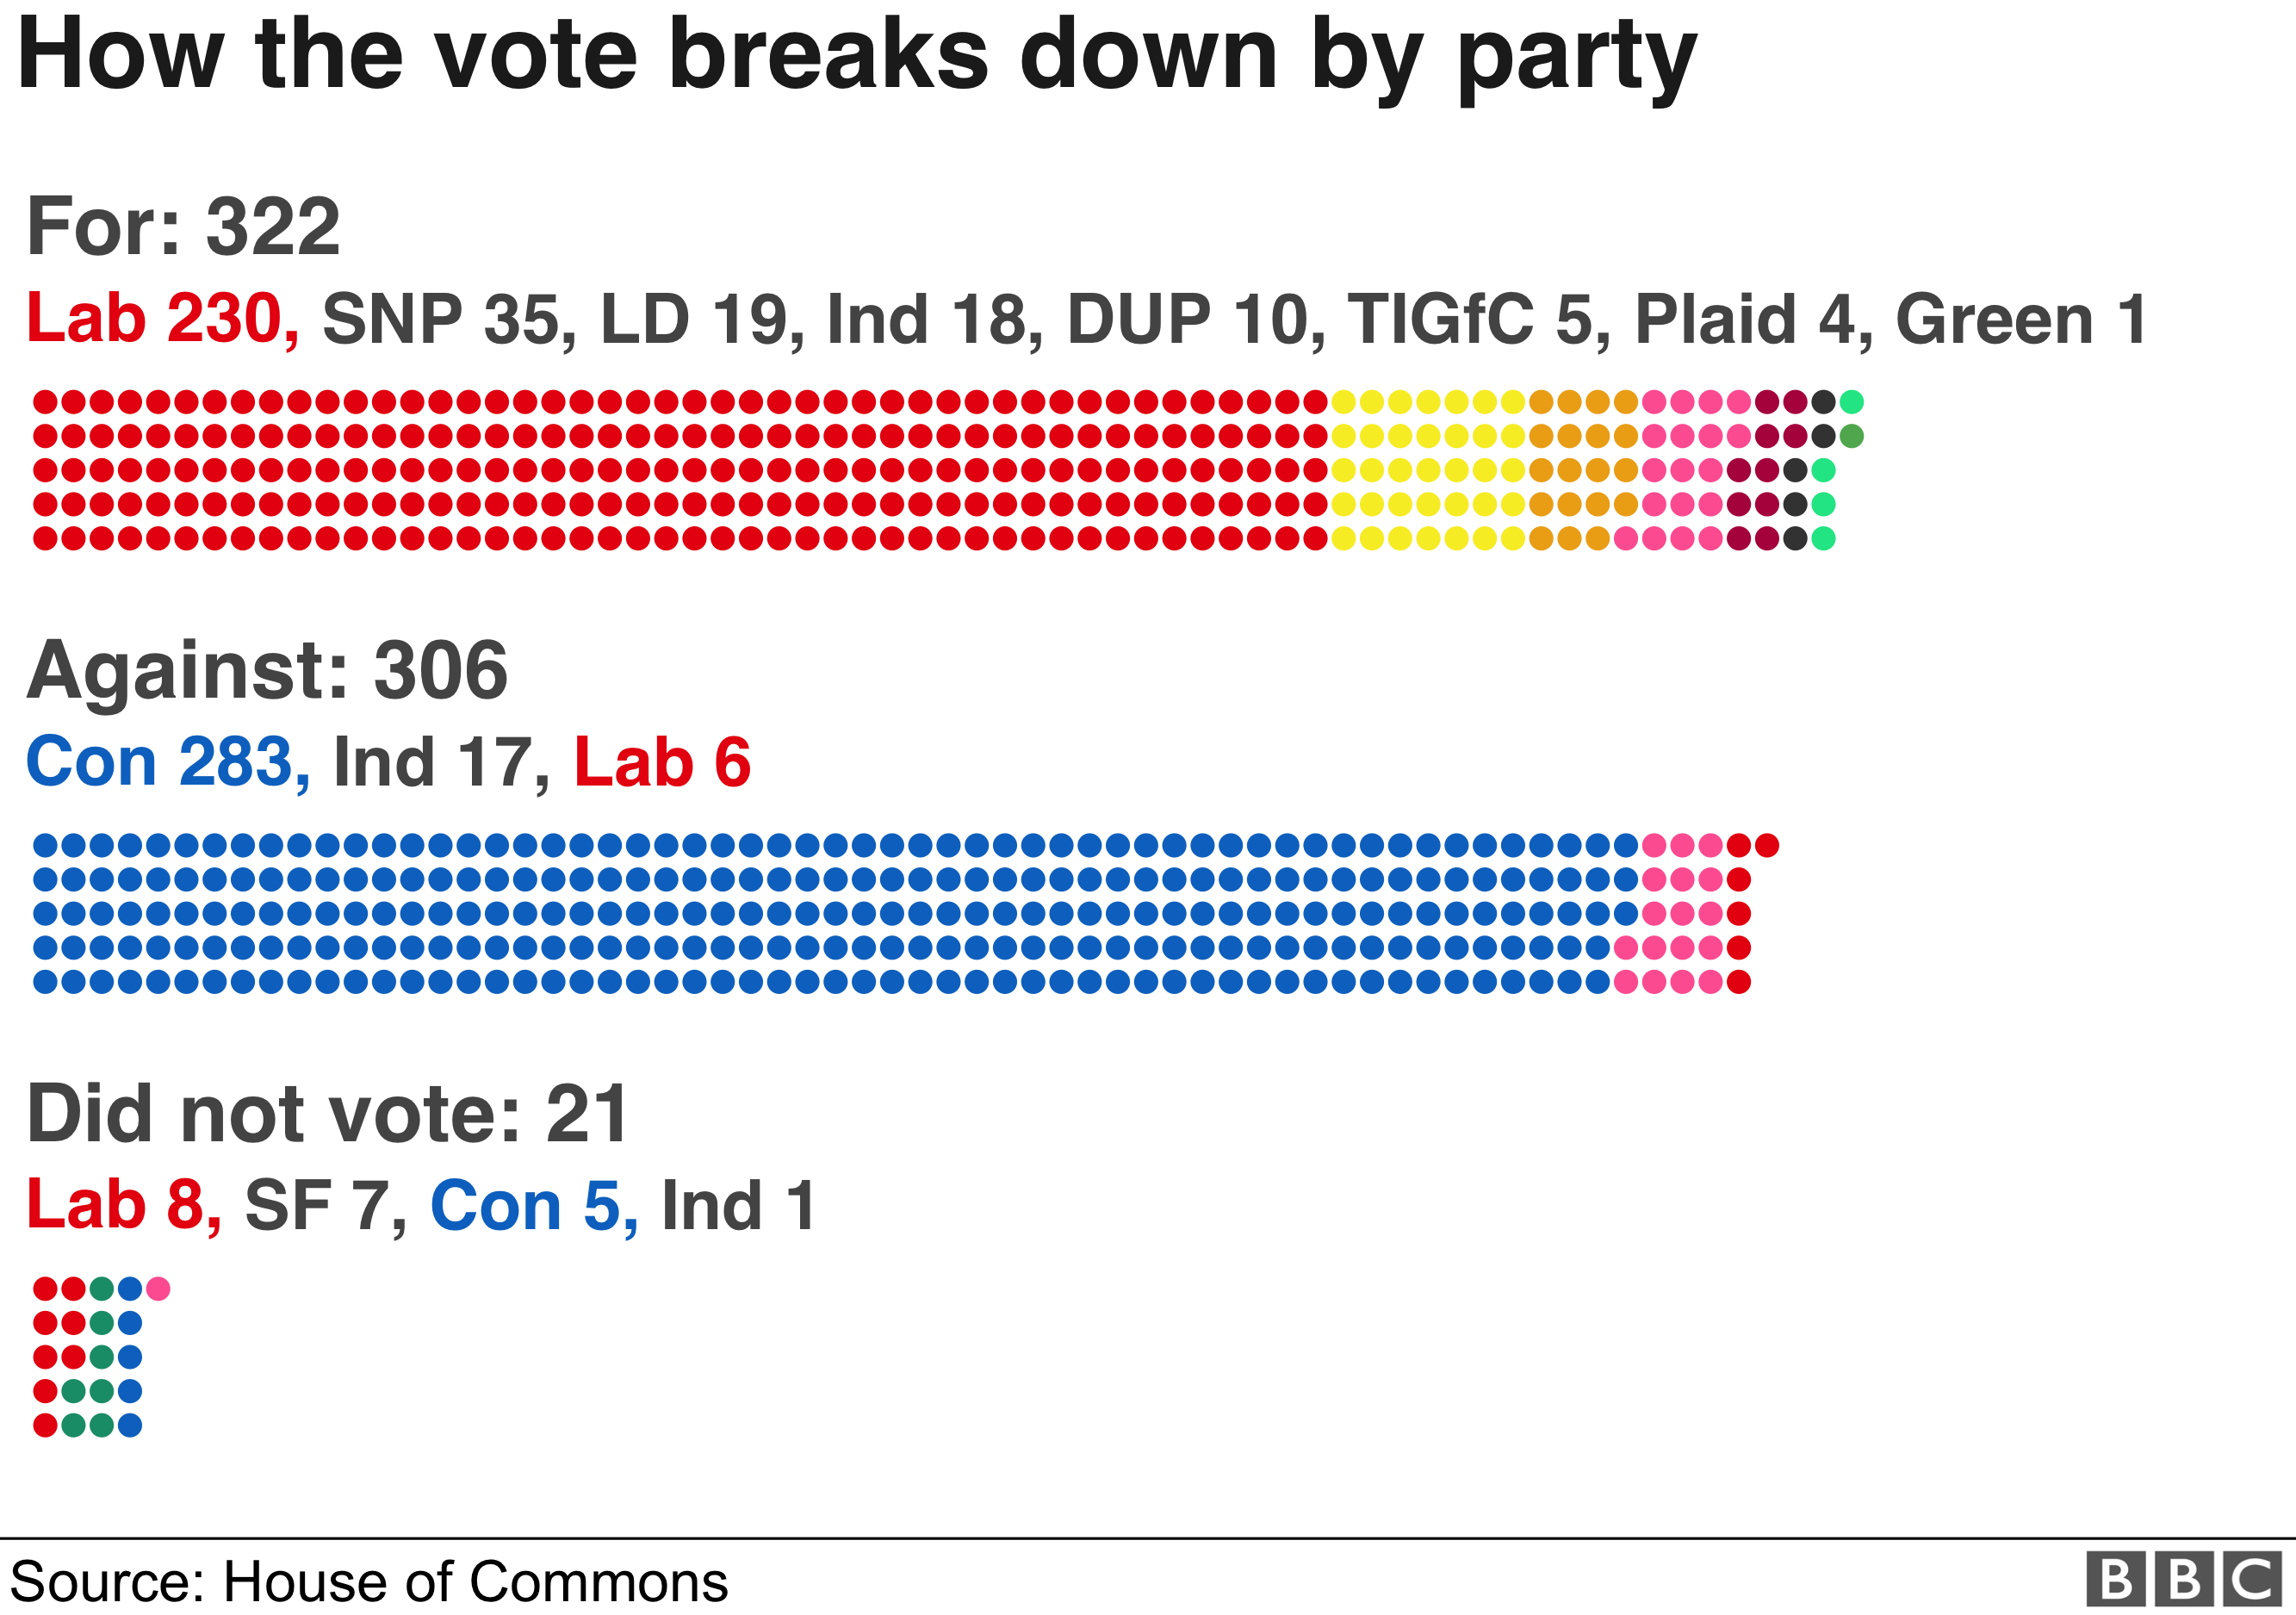 Chart showing the breakdown by party of the for and against votes (322 to 306)